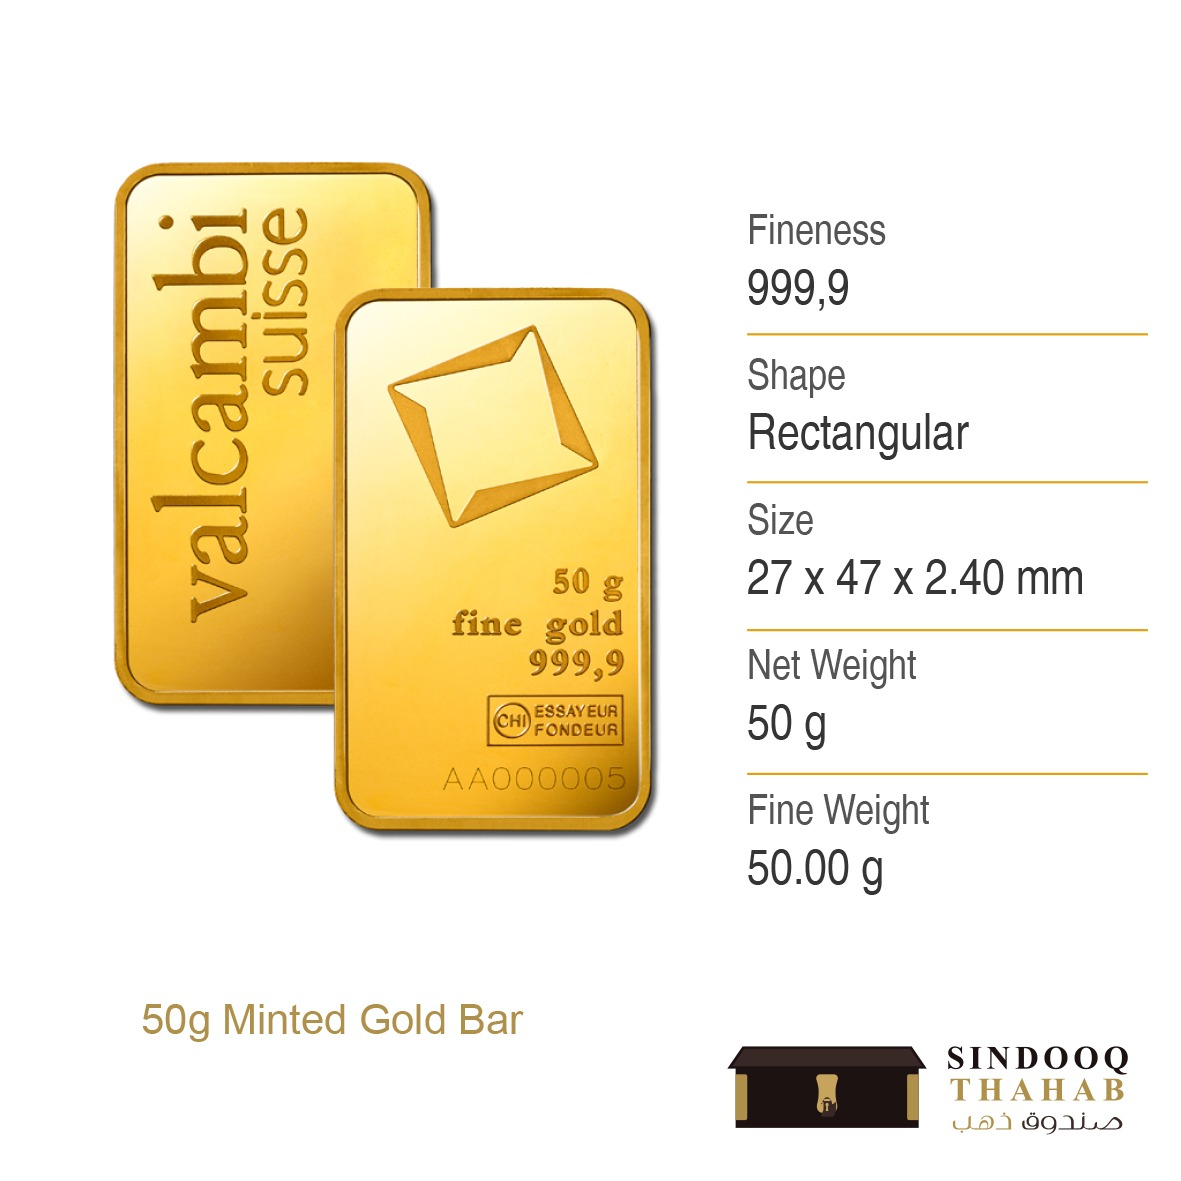 50g Minted Gold Bar